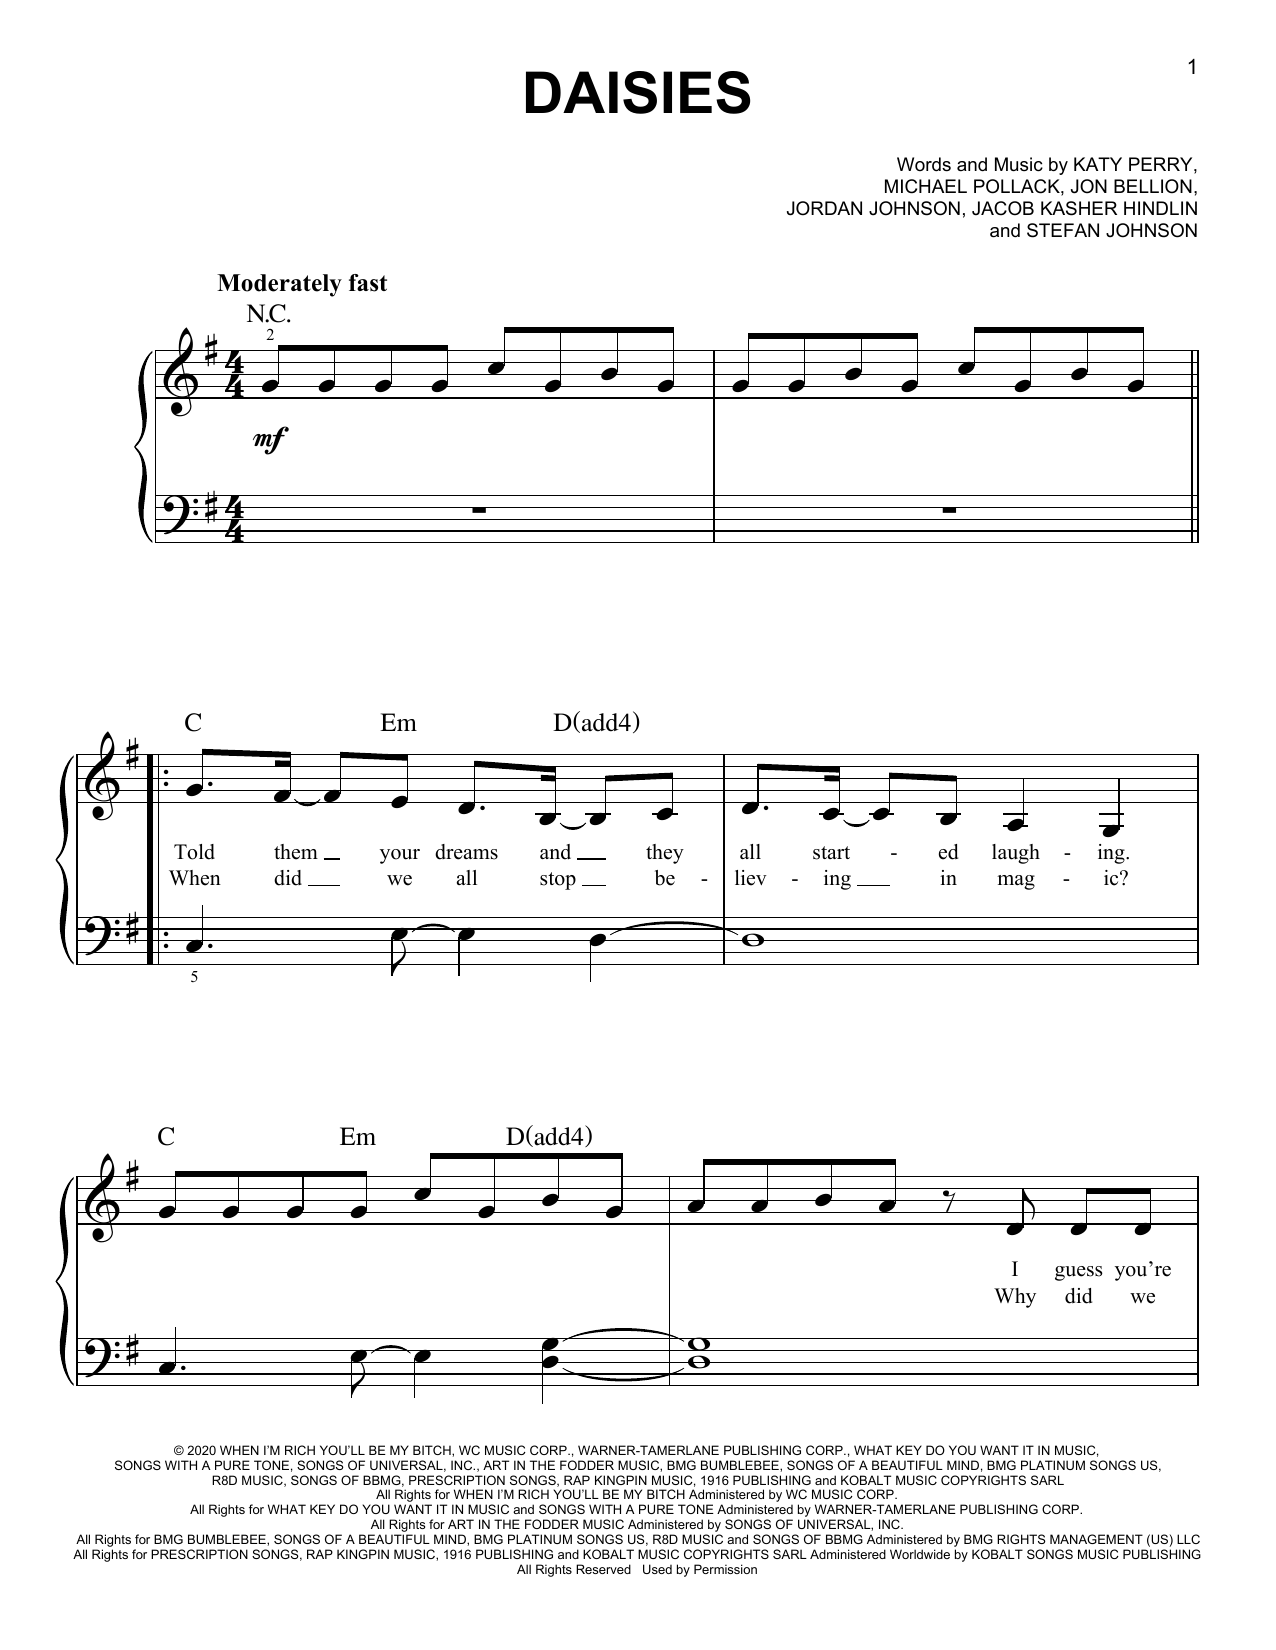 Katy Perry Daisies sheet music notes and chords. Download Printable PDF.